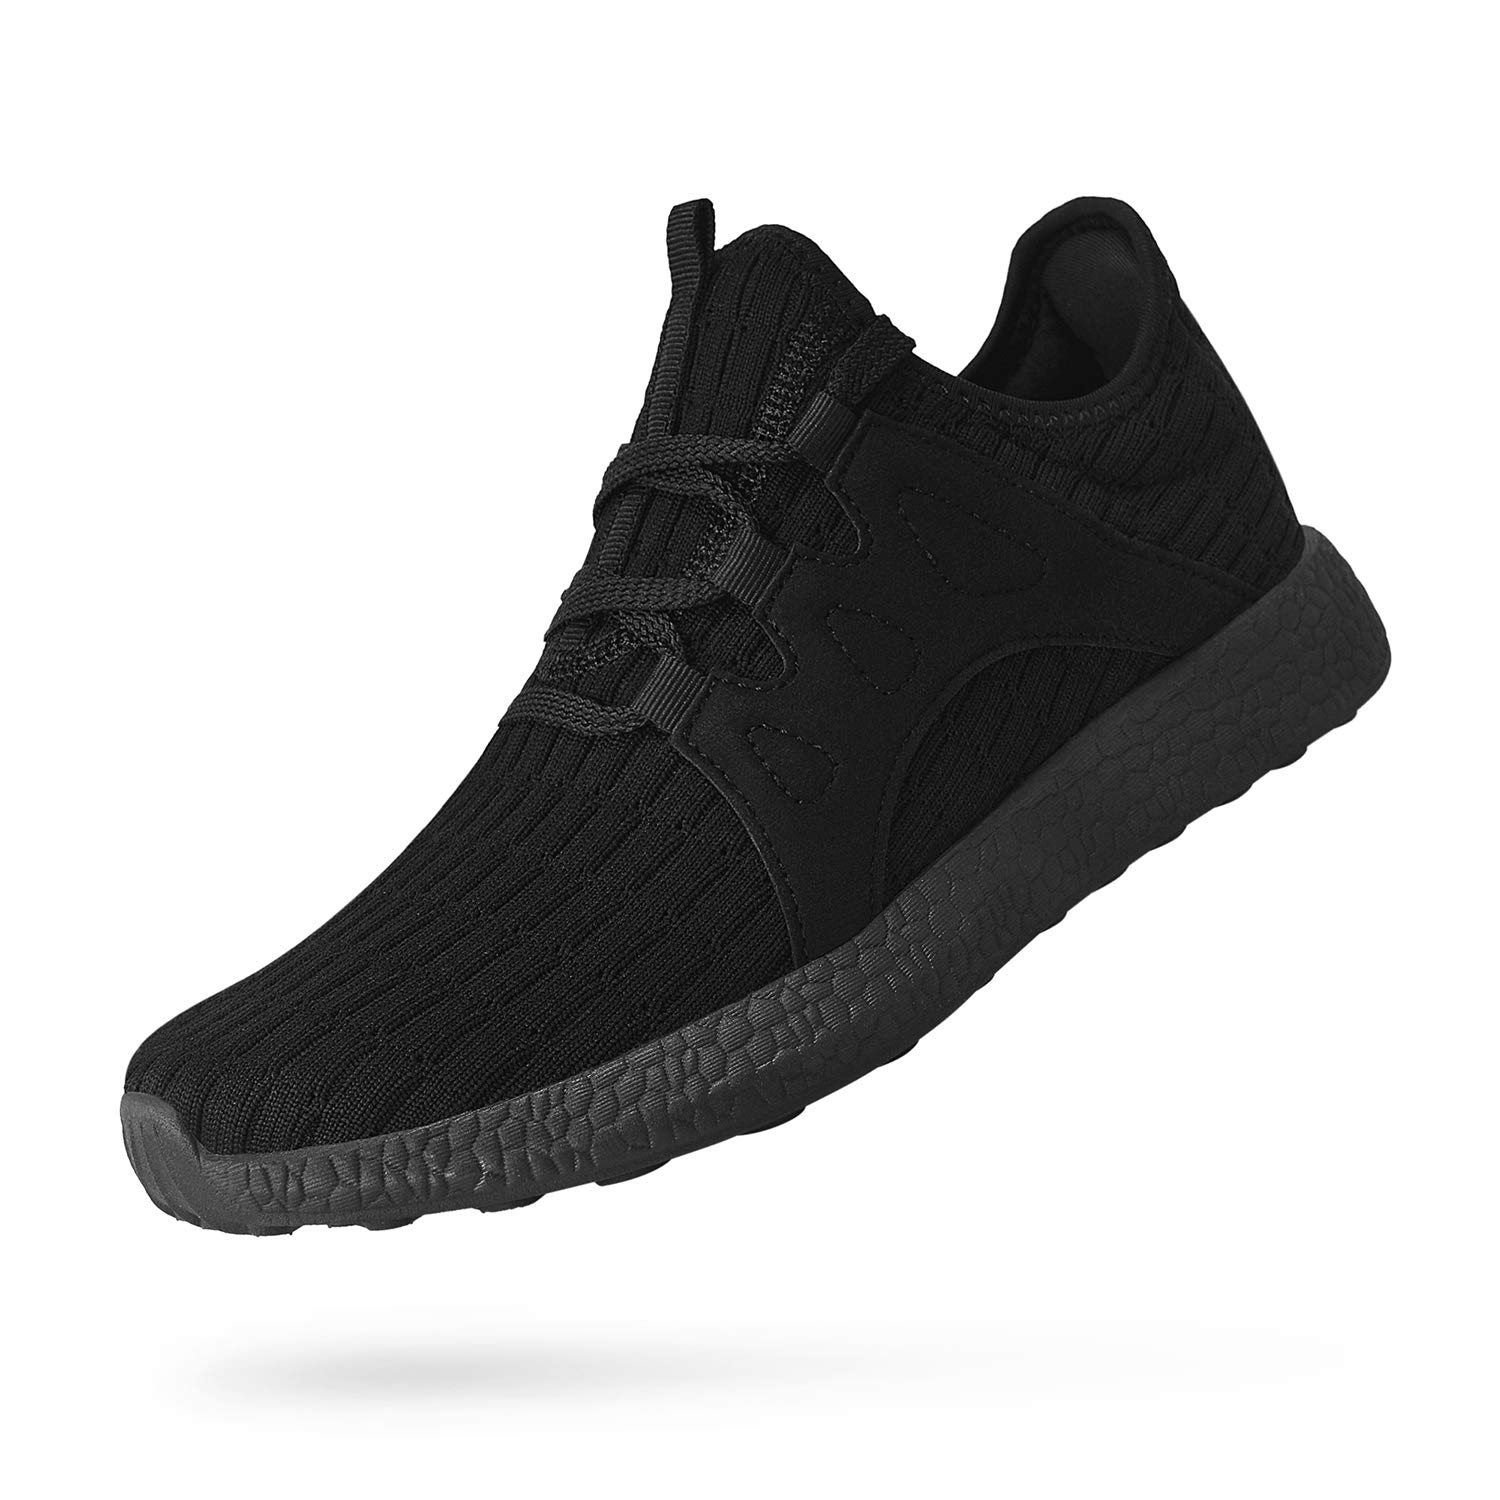 Troadlop Womens Running Shoes Non Slip Tennis Athletic Air Knitted Lightweight Breathable Mesh Sneakers Gym Sports Casual Walking Shoes,Black 11.5 US M…